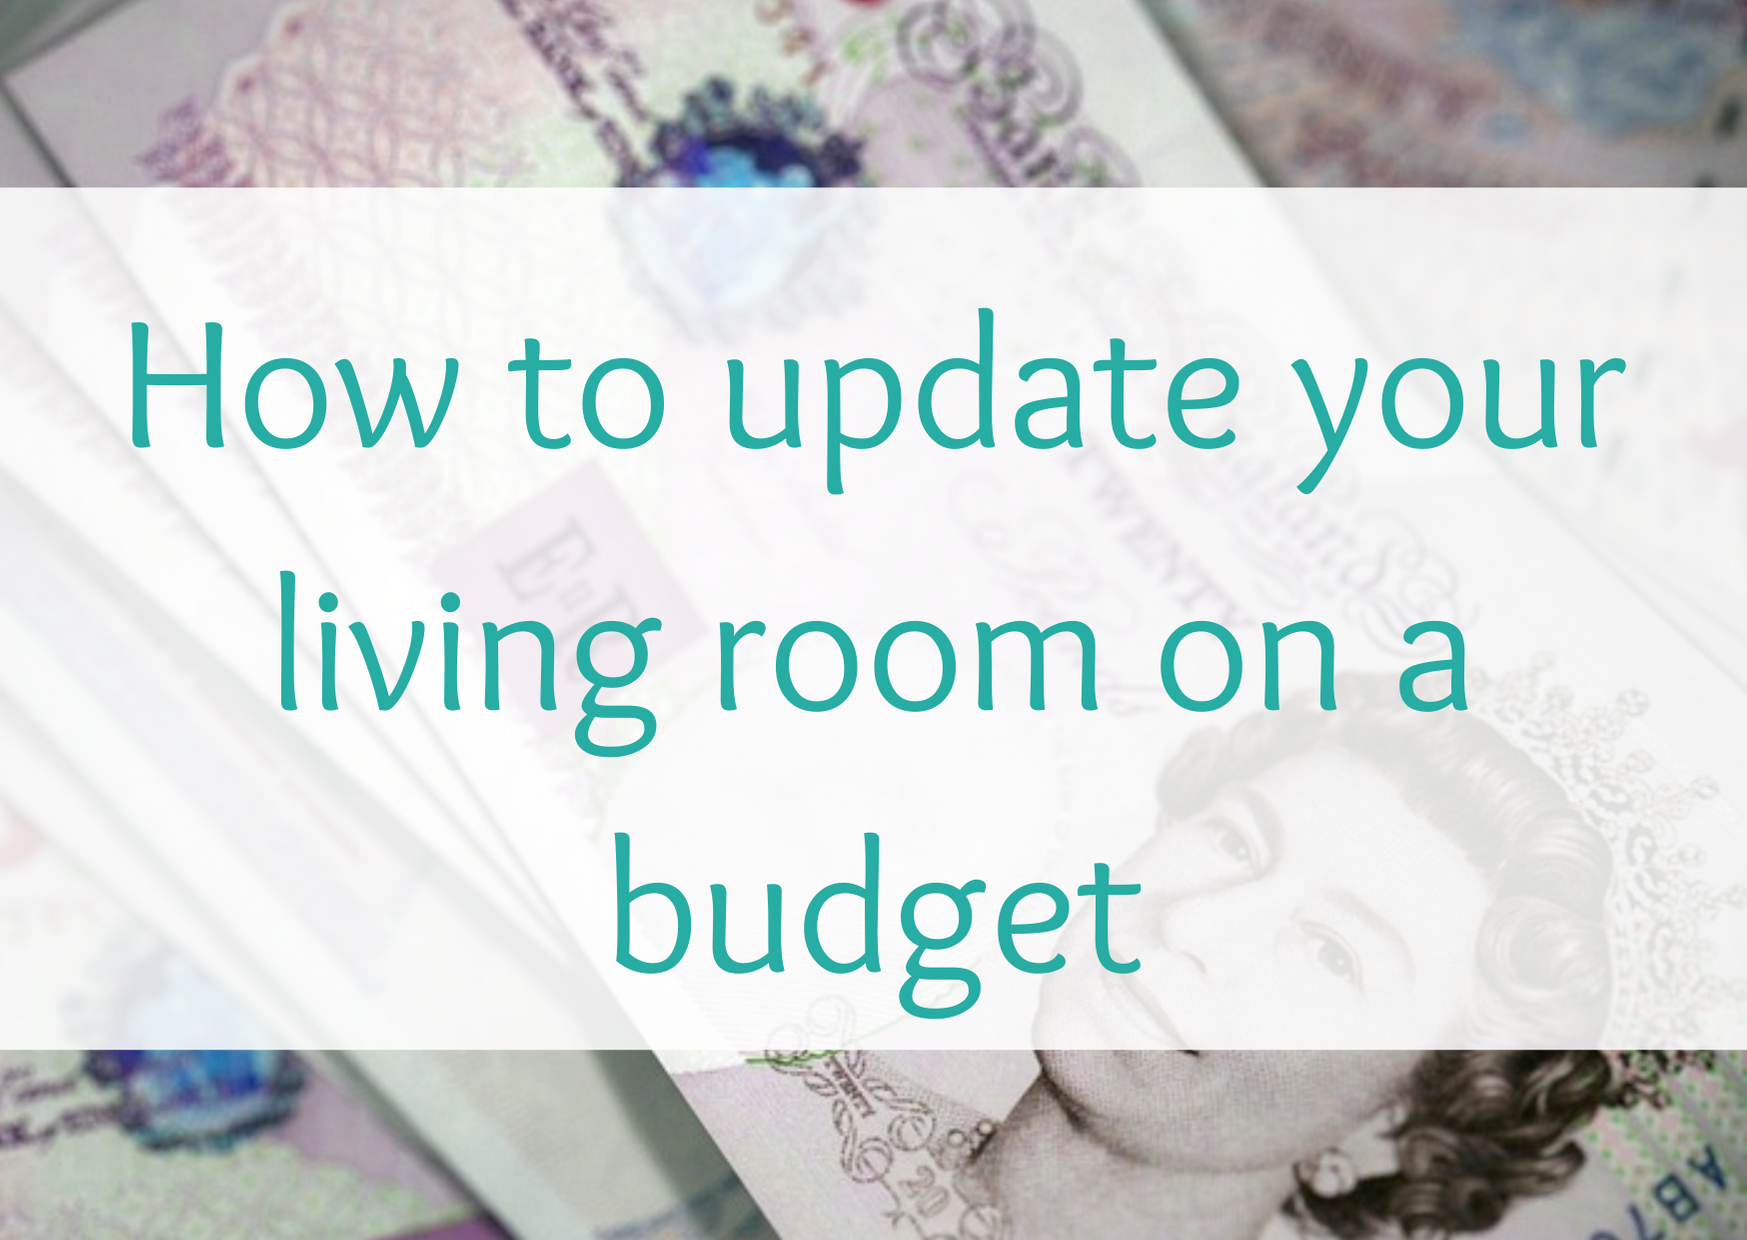 Cheap and cheerful ideas to update your living room on a budget